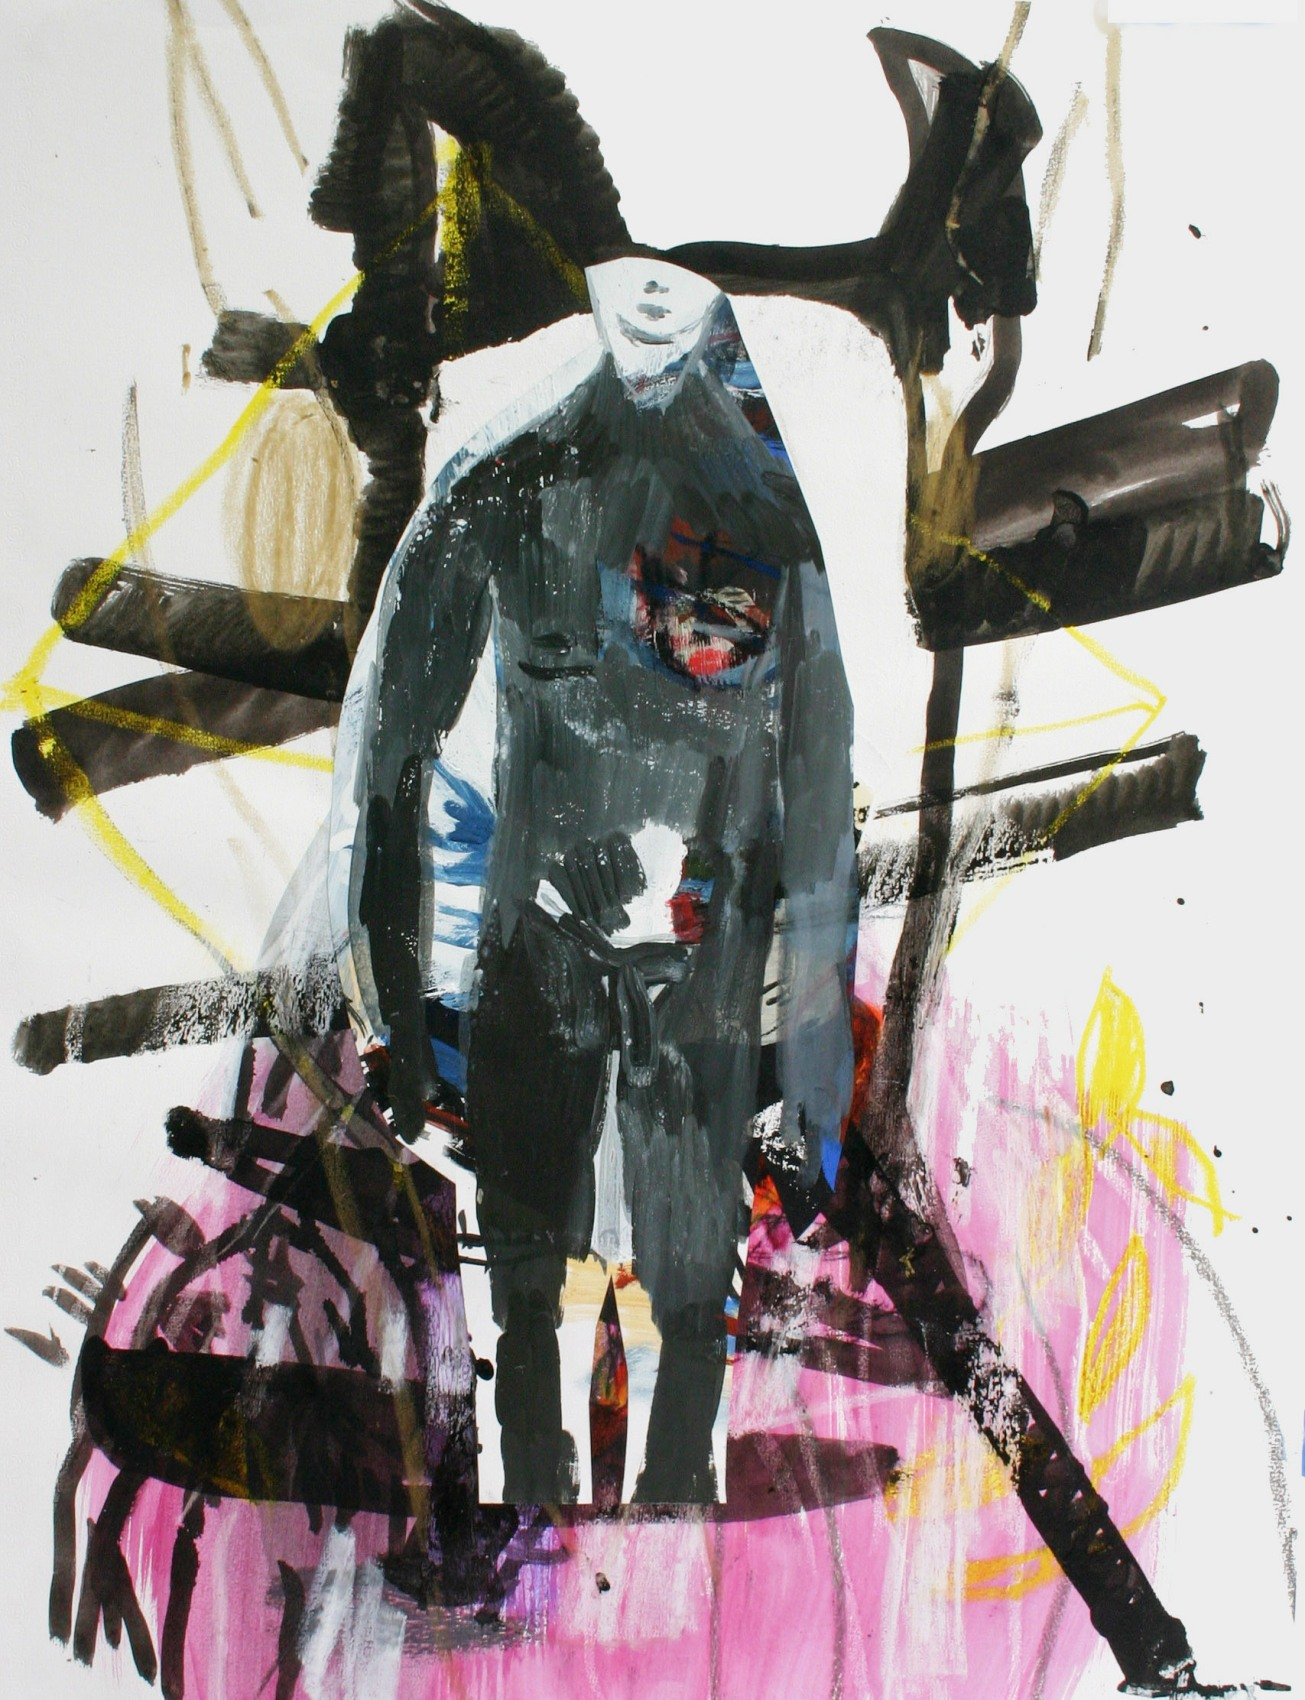 Emma Smith, Man in hole , Mixed media on paper, 420 x 594 mm, 2010